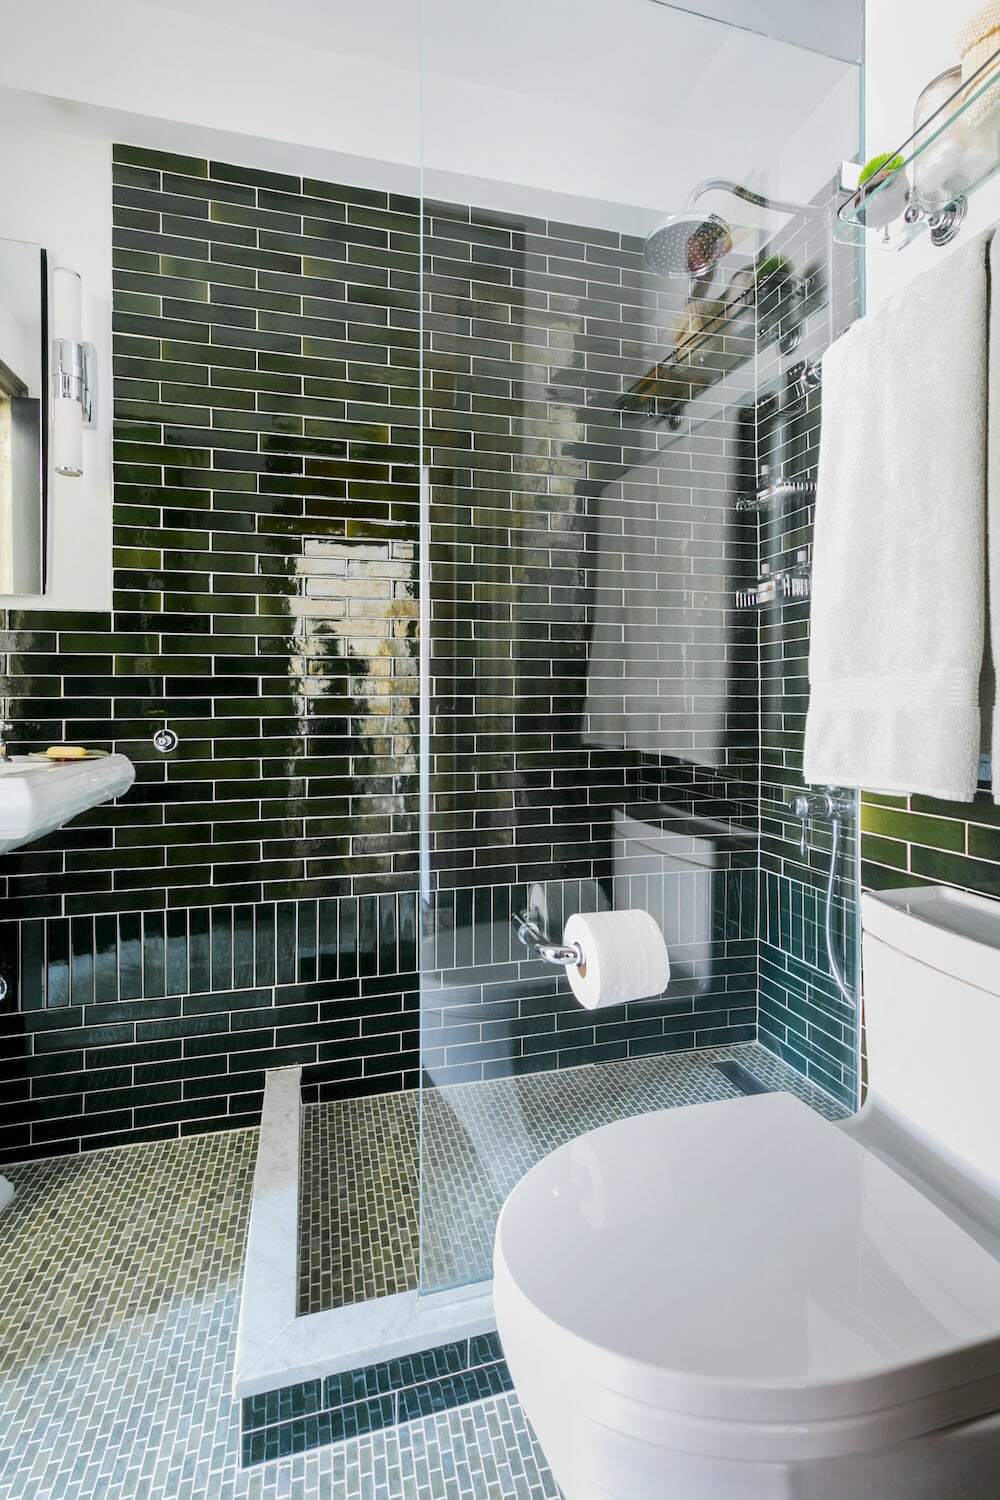 Replacing a bathtub for a standing shower leaves this space feeling spacious and streamlined